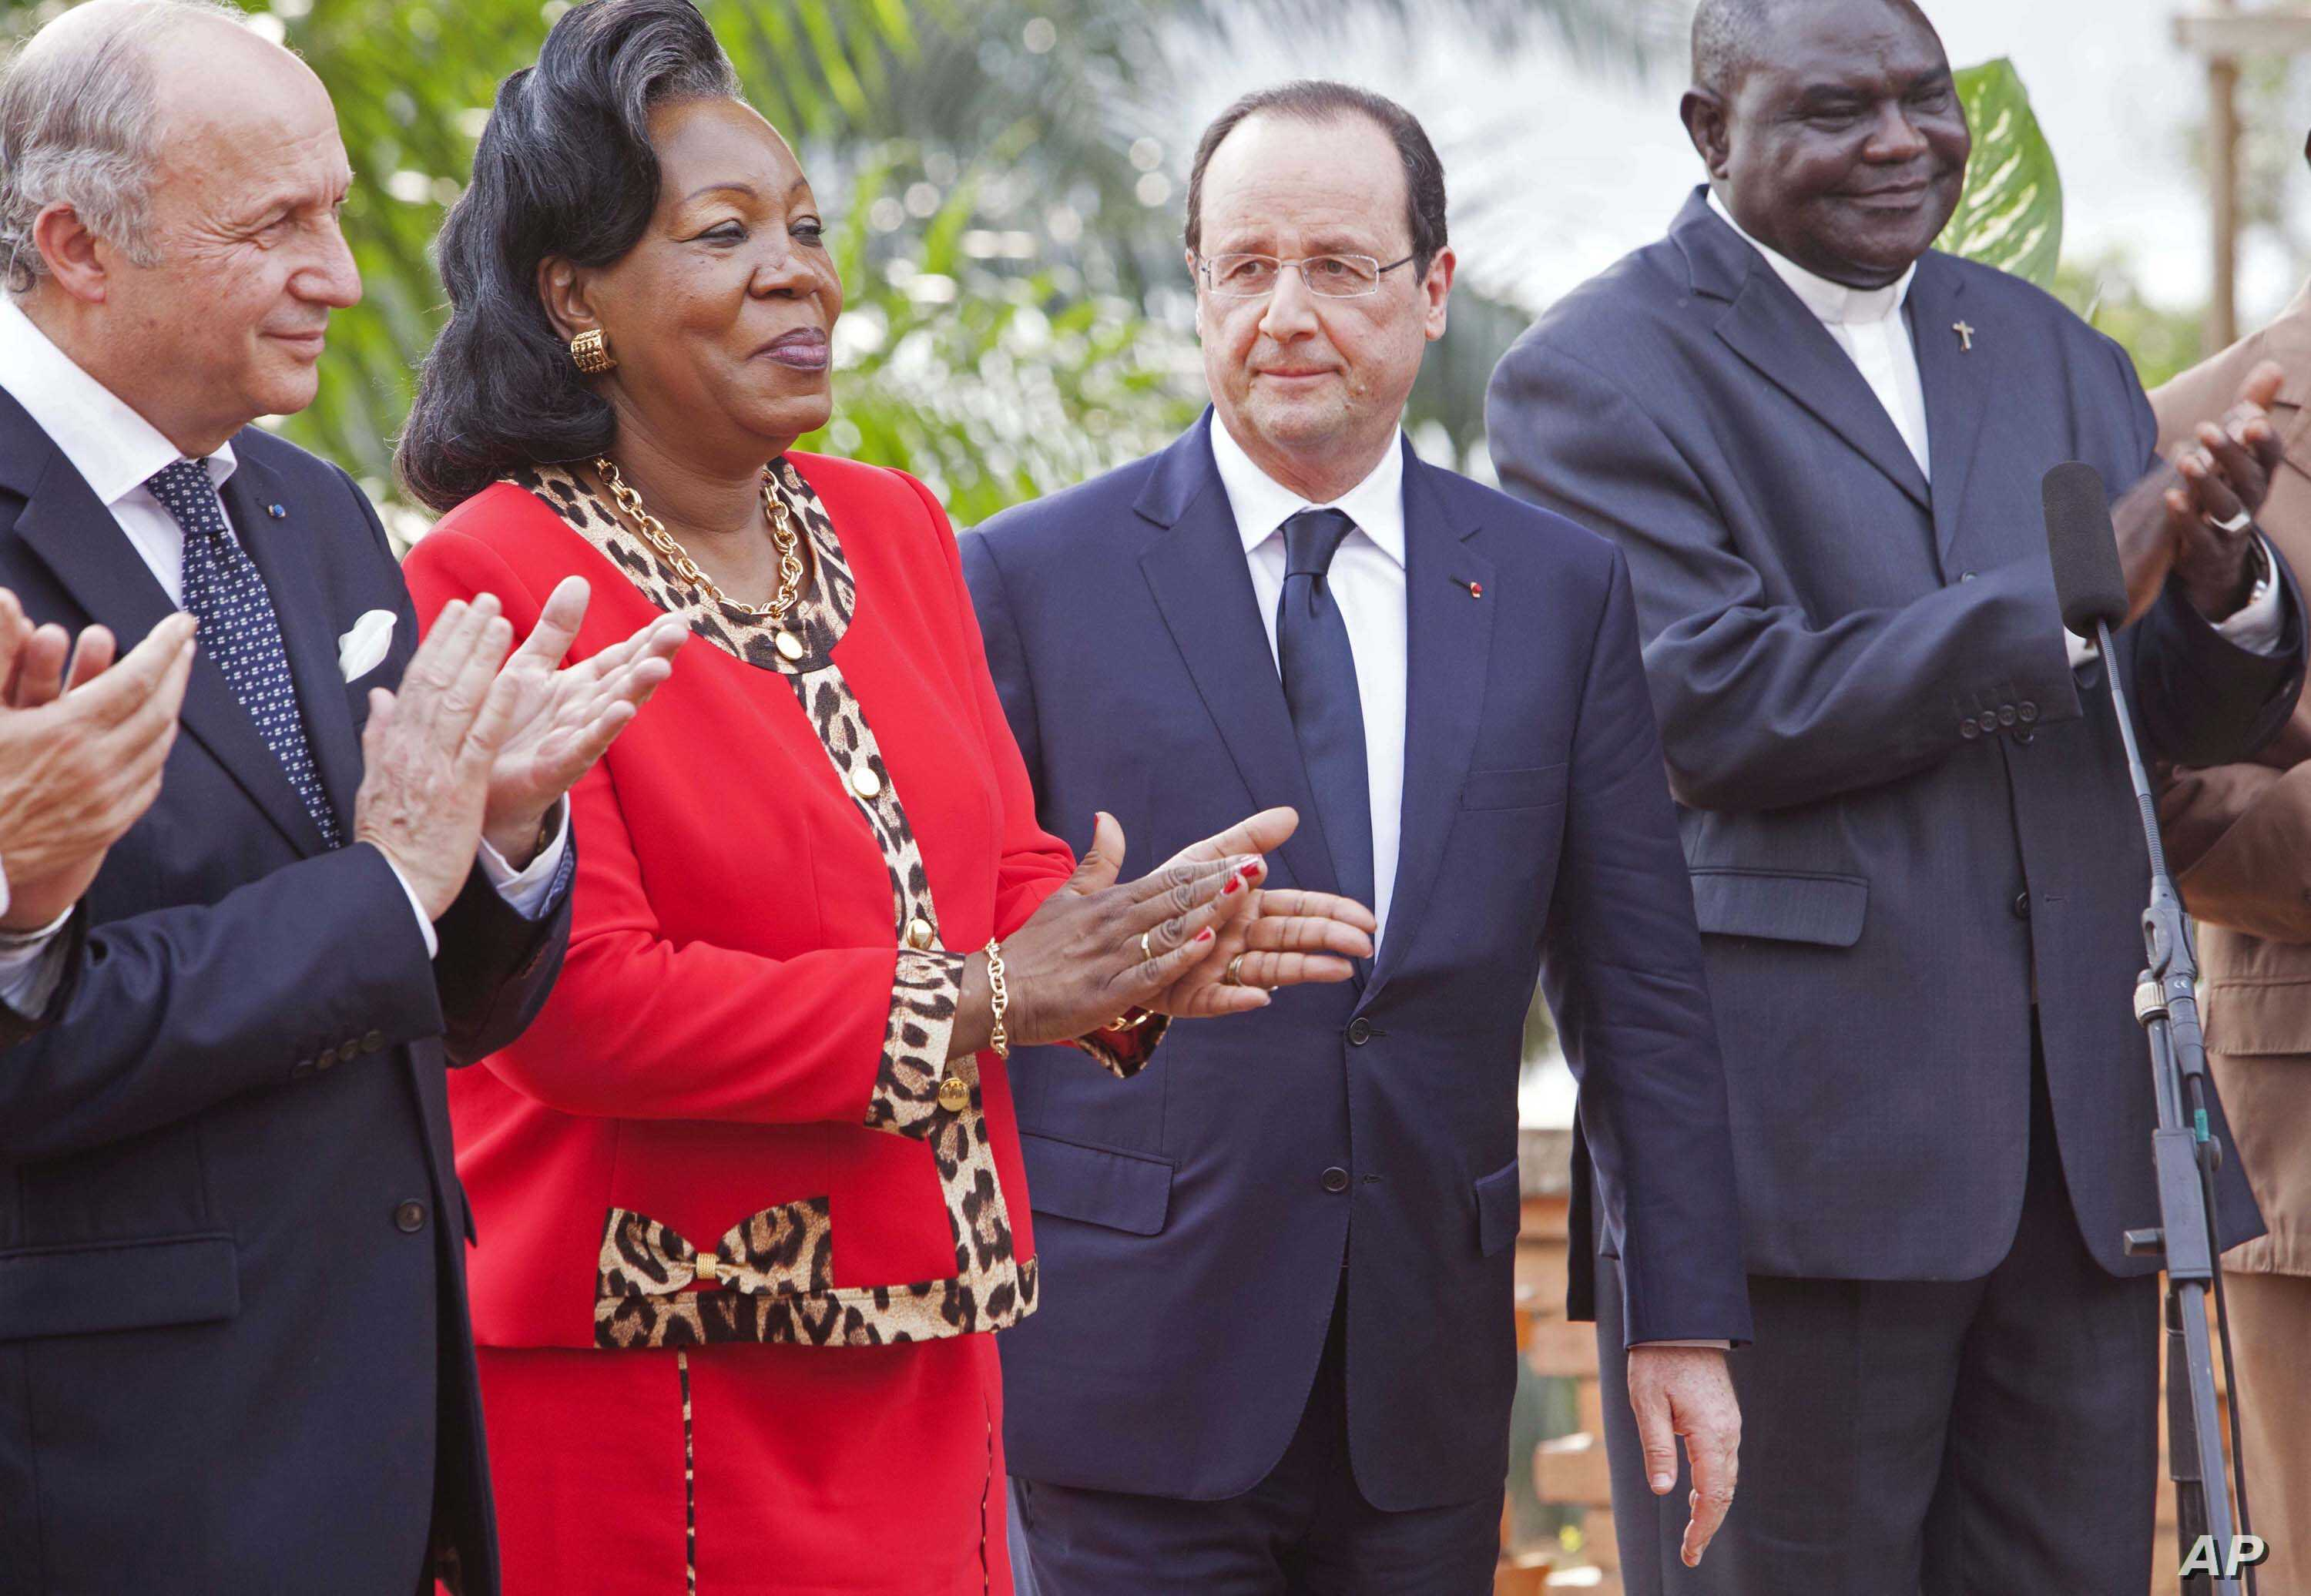 French president Francois Hollande, second right, looks at interim Central African Republic President Catherine Samba-Panza, second left, in Bangui, Central African Republic, Feb. 28, 2014.